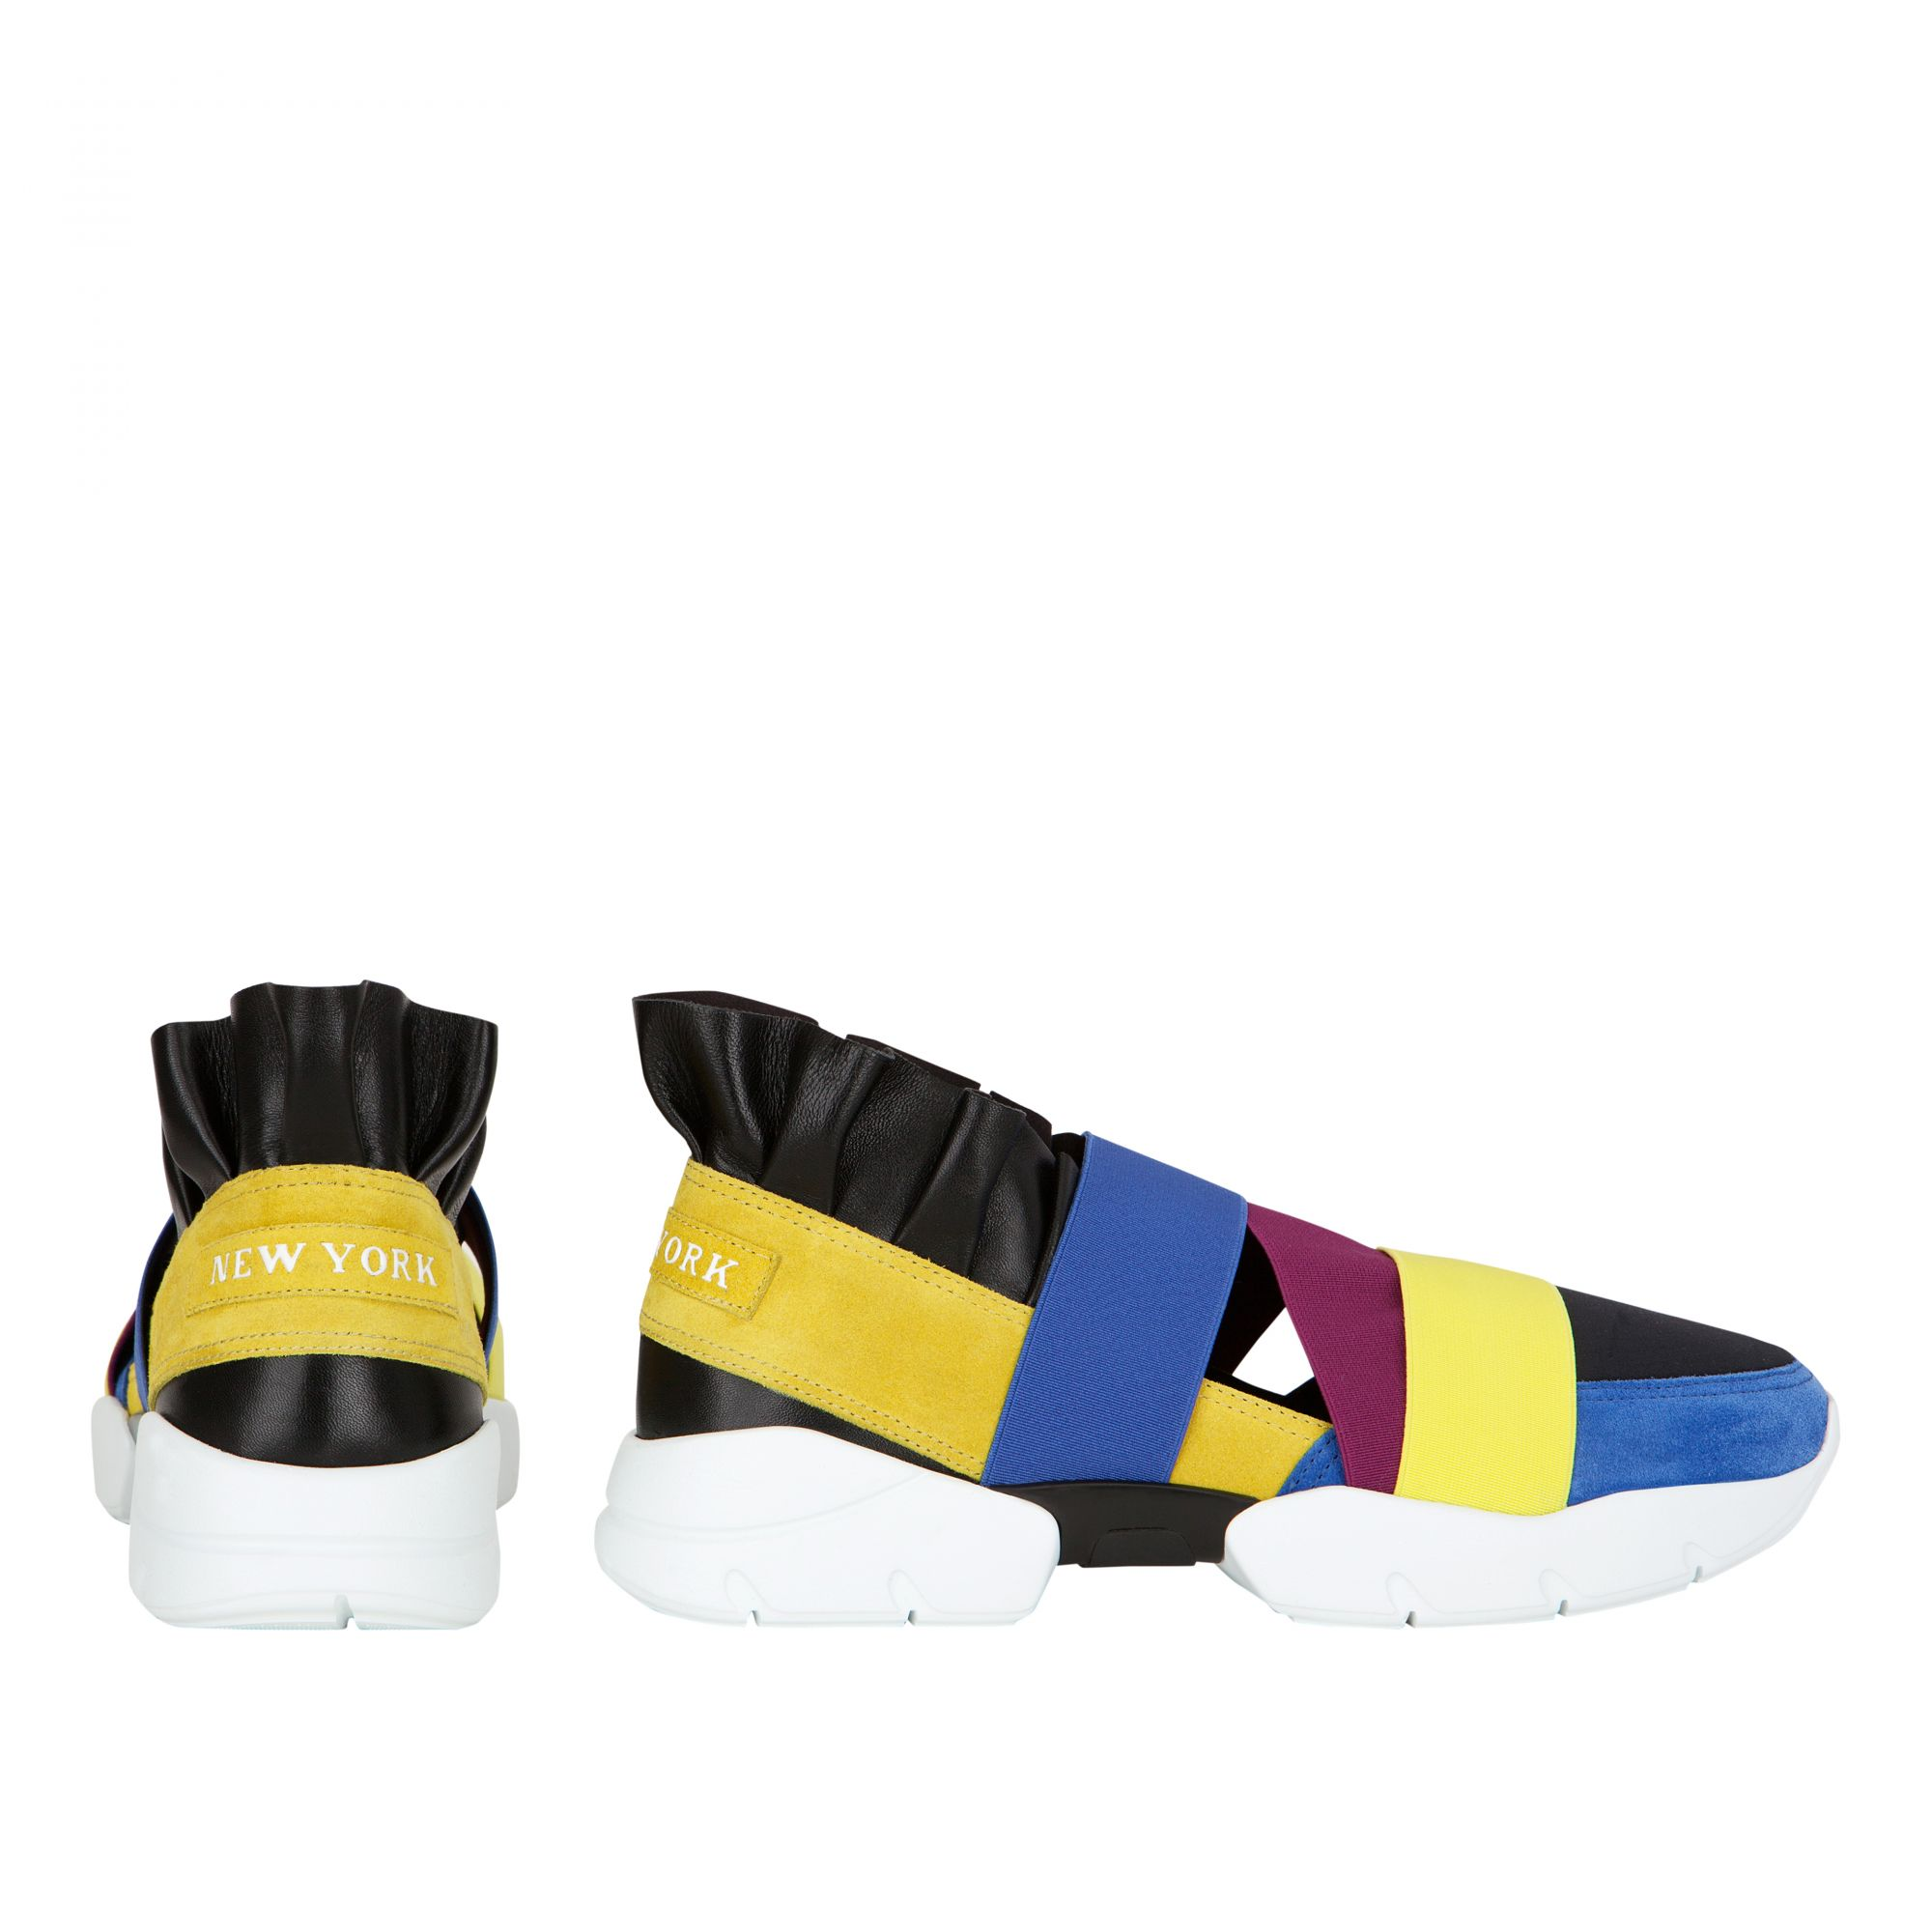 """Emilio Pucci Launches """"Sneakers Of The World"""""""